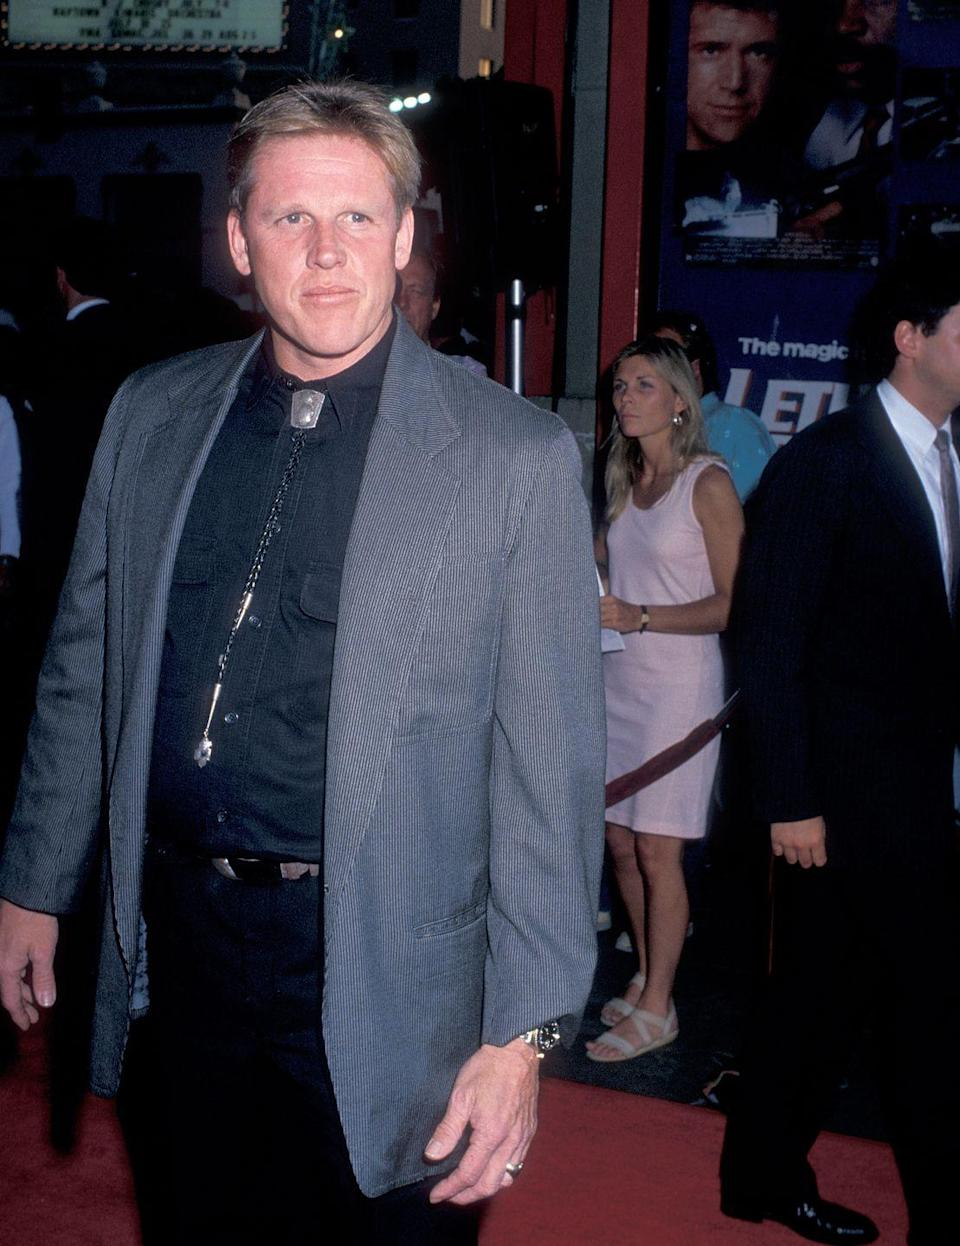 "<p>In 1988, Busey went out on his motorcycle without a helmet and got into a crash. In an essay for <a href=""https://people.com/archive/a-near-fatal-motorcycle-crash-changes-an-actors-life-but-not-his-refusal-to-wear-a-helmet-vol-31-no-19/"" rel=""nofollow noopener"" target=""_blank"" data-ylk=""slk:PEOPLE"" class=""link rapid-noclick-resp"">PEOPLE</a>, Busey said he didn't recall the first six weeks after the accident due to post-traumatic amnesia: ""People have told me I was angry that I was in the hospital and didn't want the nurses touching me,"" he wrote. ""The doctors wound up isolating me in a psychiatric ward and giving me three types of medication to calm me.""</p>"